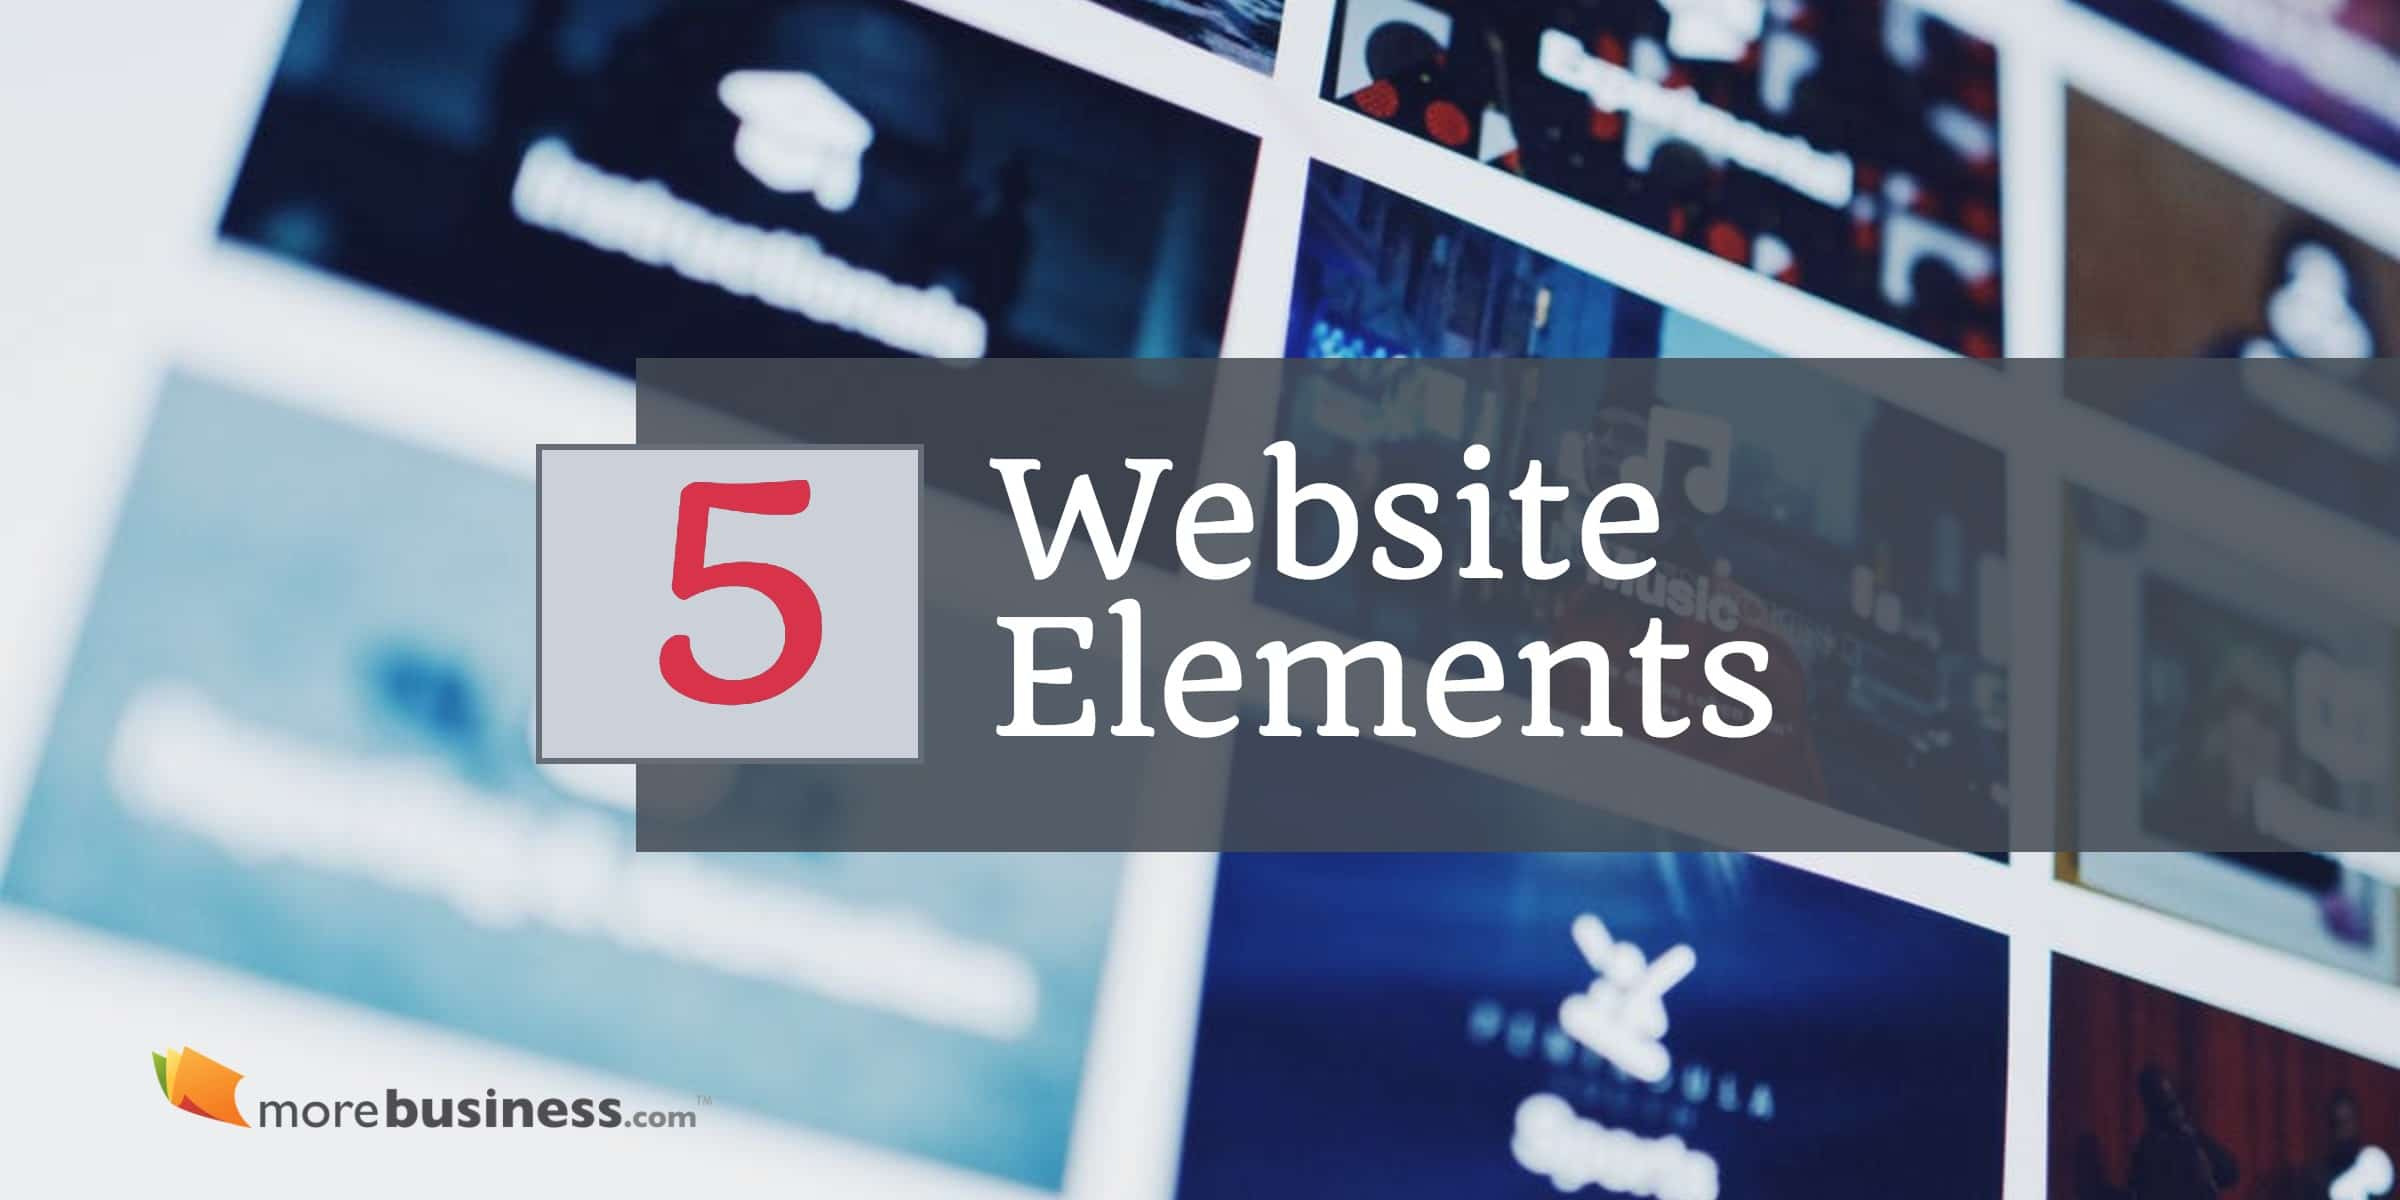 website elements - what makes a great website